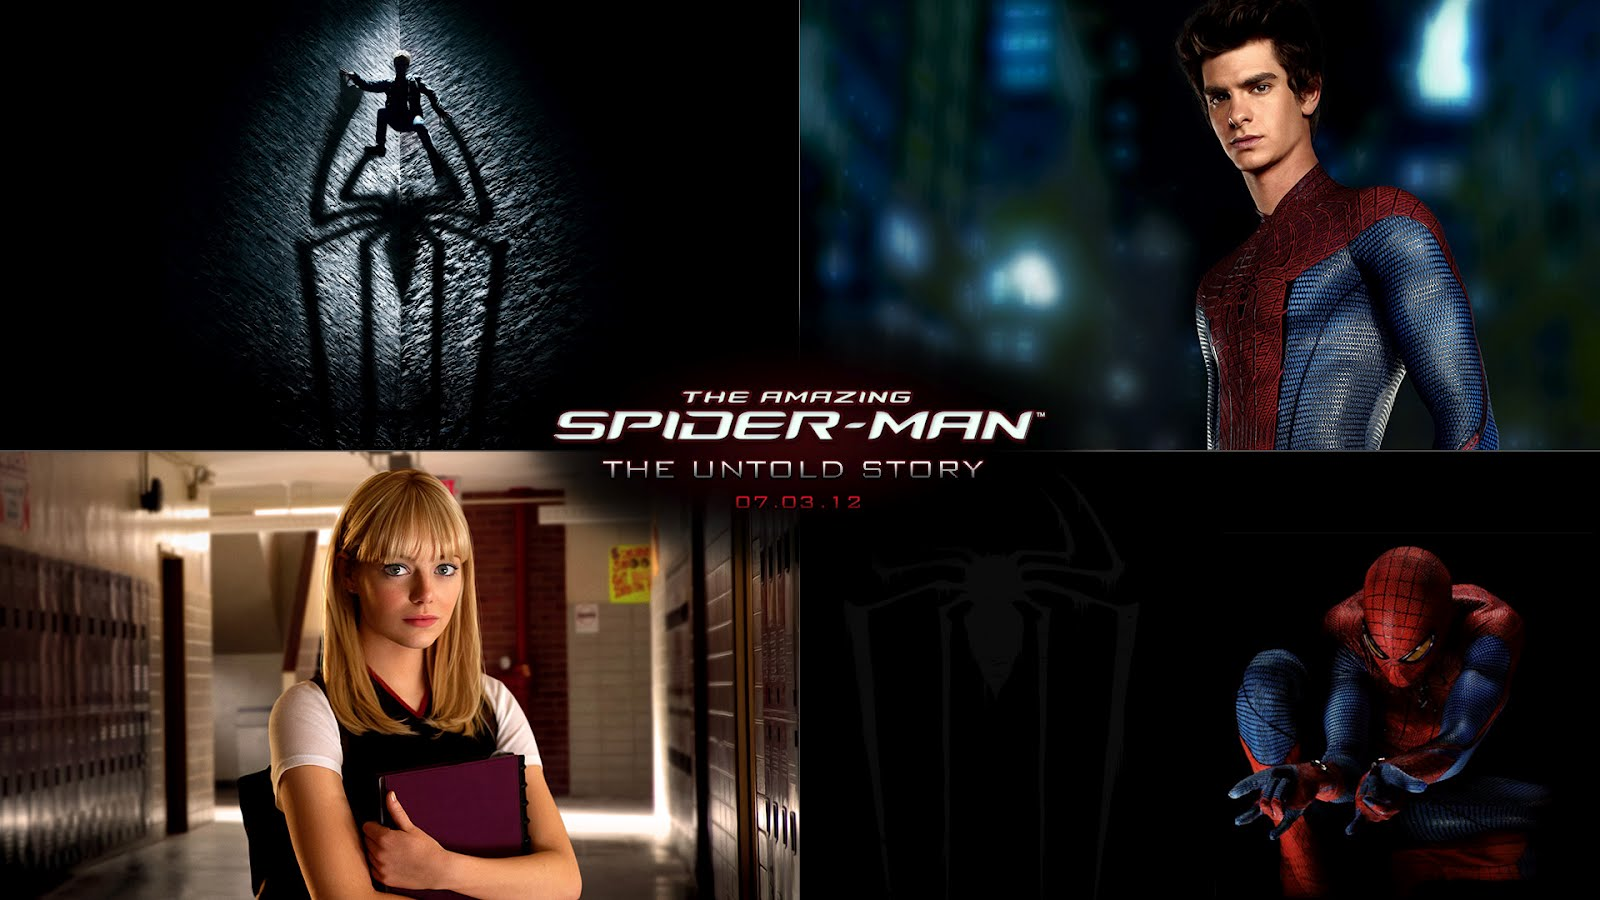 The amazing spiderman new movies wallpapers - New spiderman movie wallpaper ...